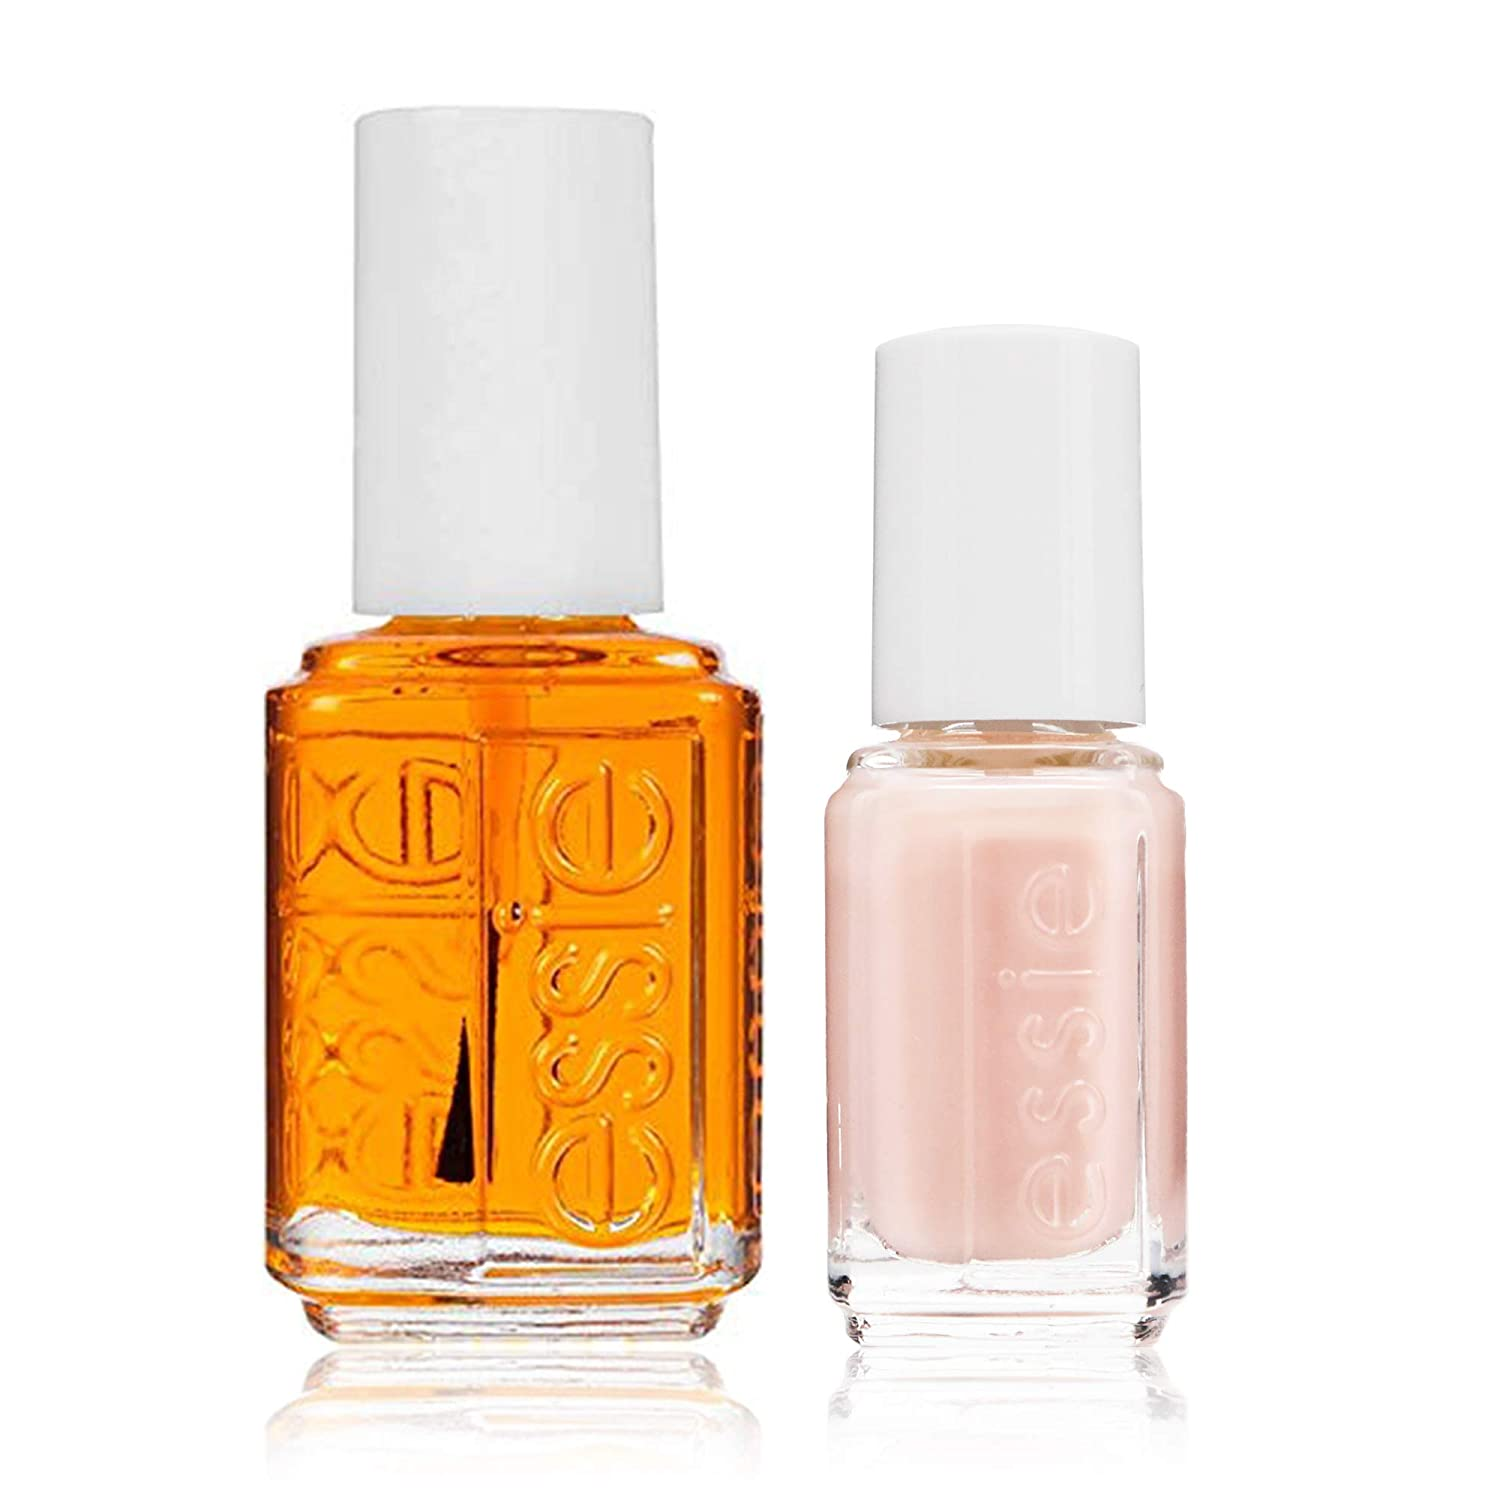 essie Care Treatment Apricot Cuticle Oil Cuticle Hydrator Nourish + Soften 0.46 fl oz with BONUS essie mini Skinny Dip Nail Polish, 1 ea